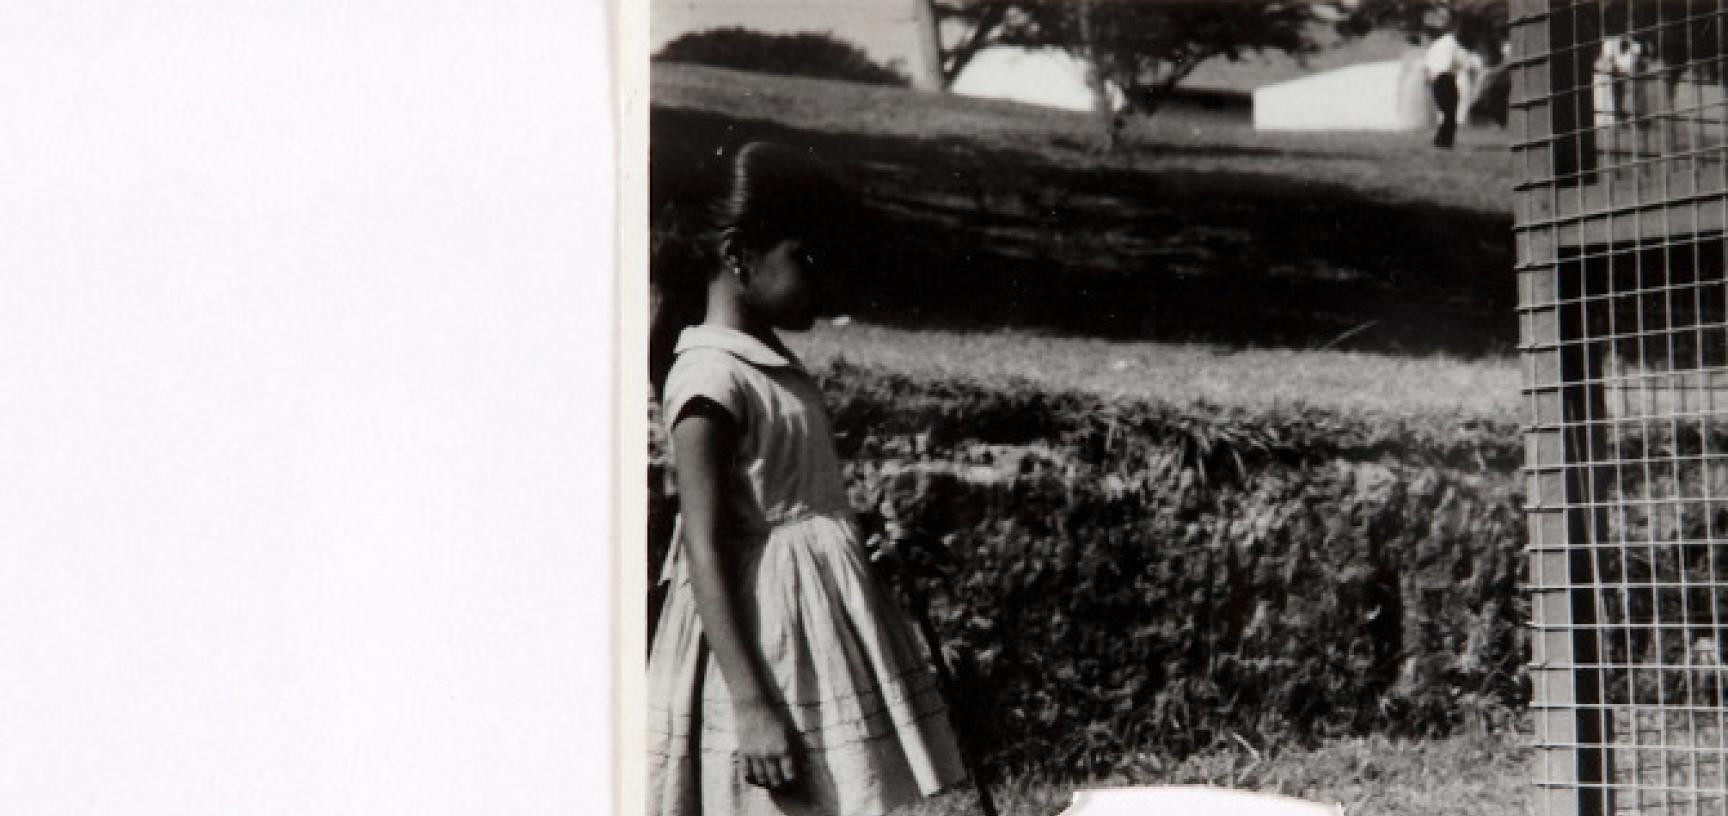 'Untitled' from the series Family Stories (2012). (Copyright Sunil Shah)